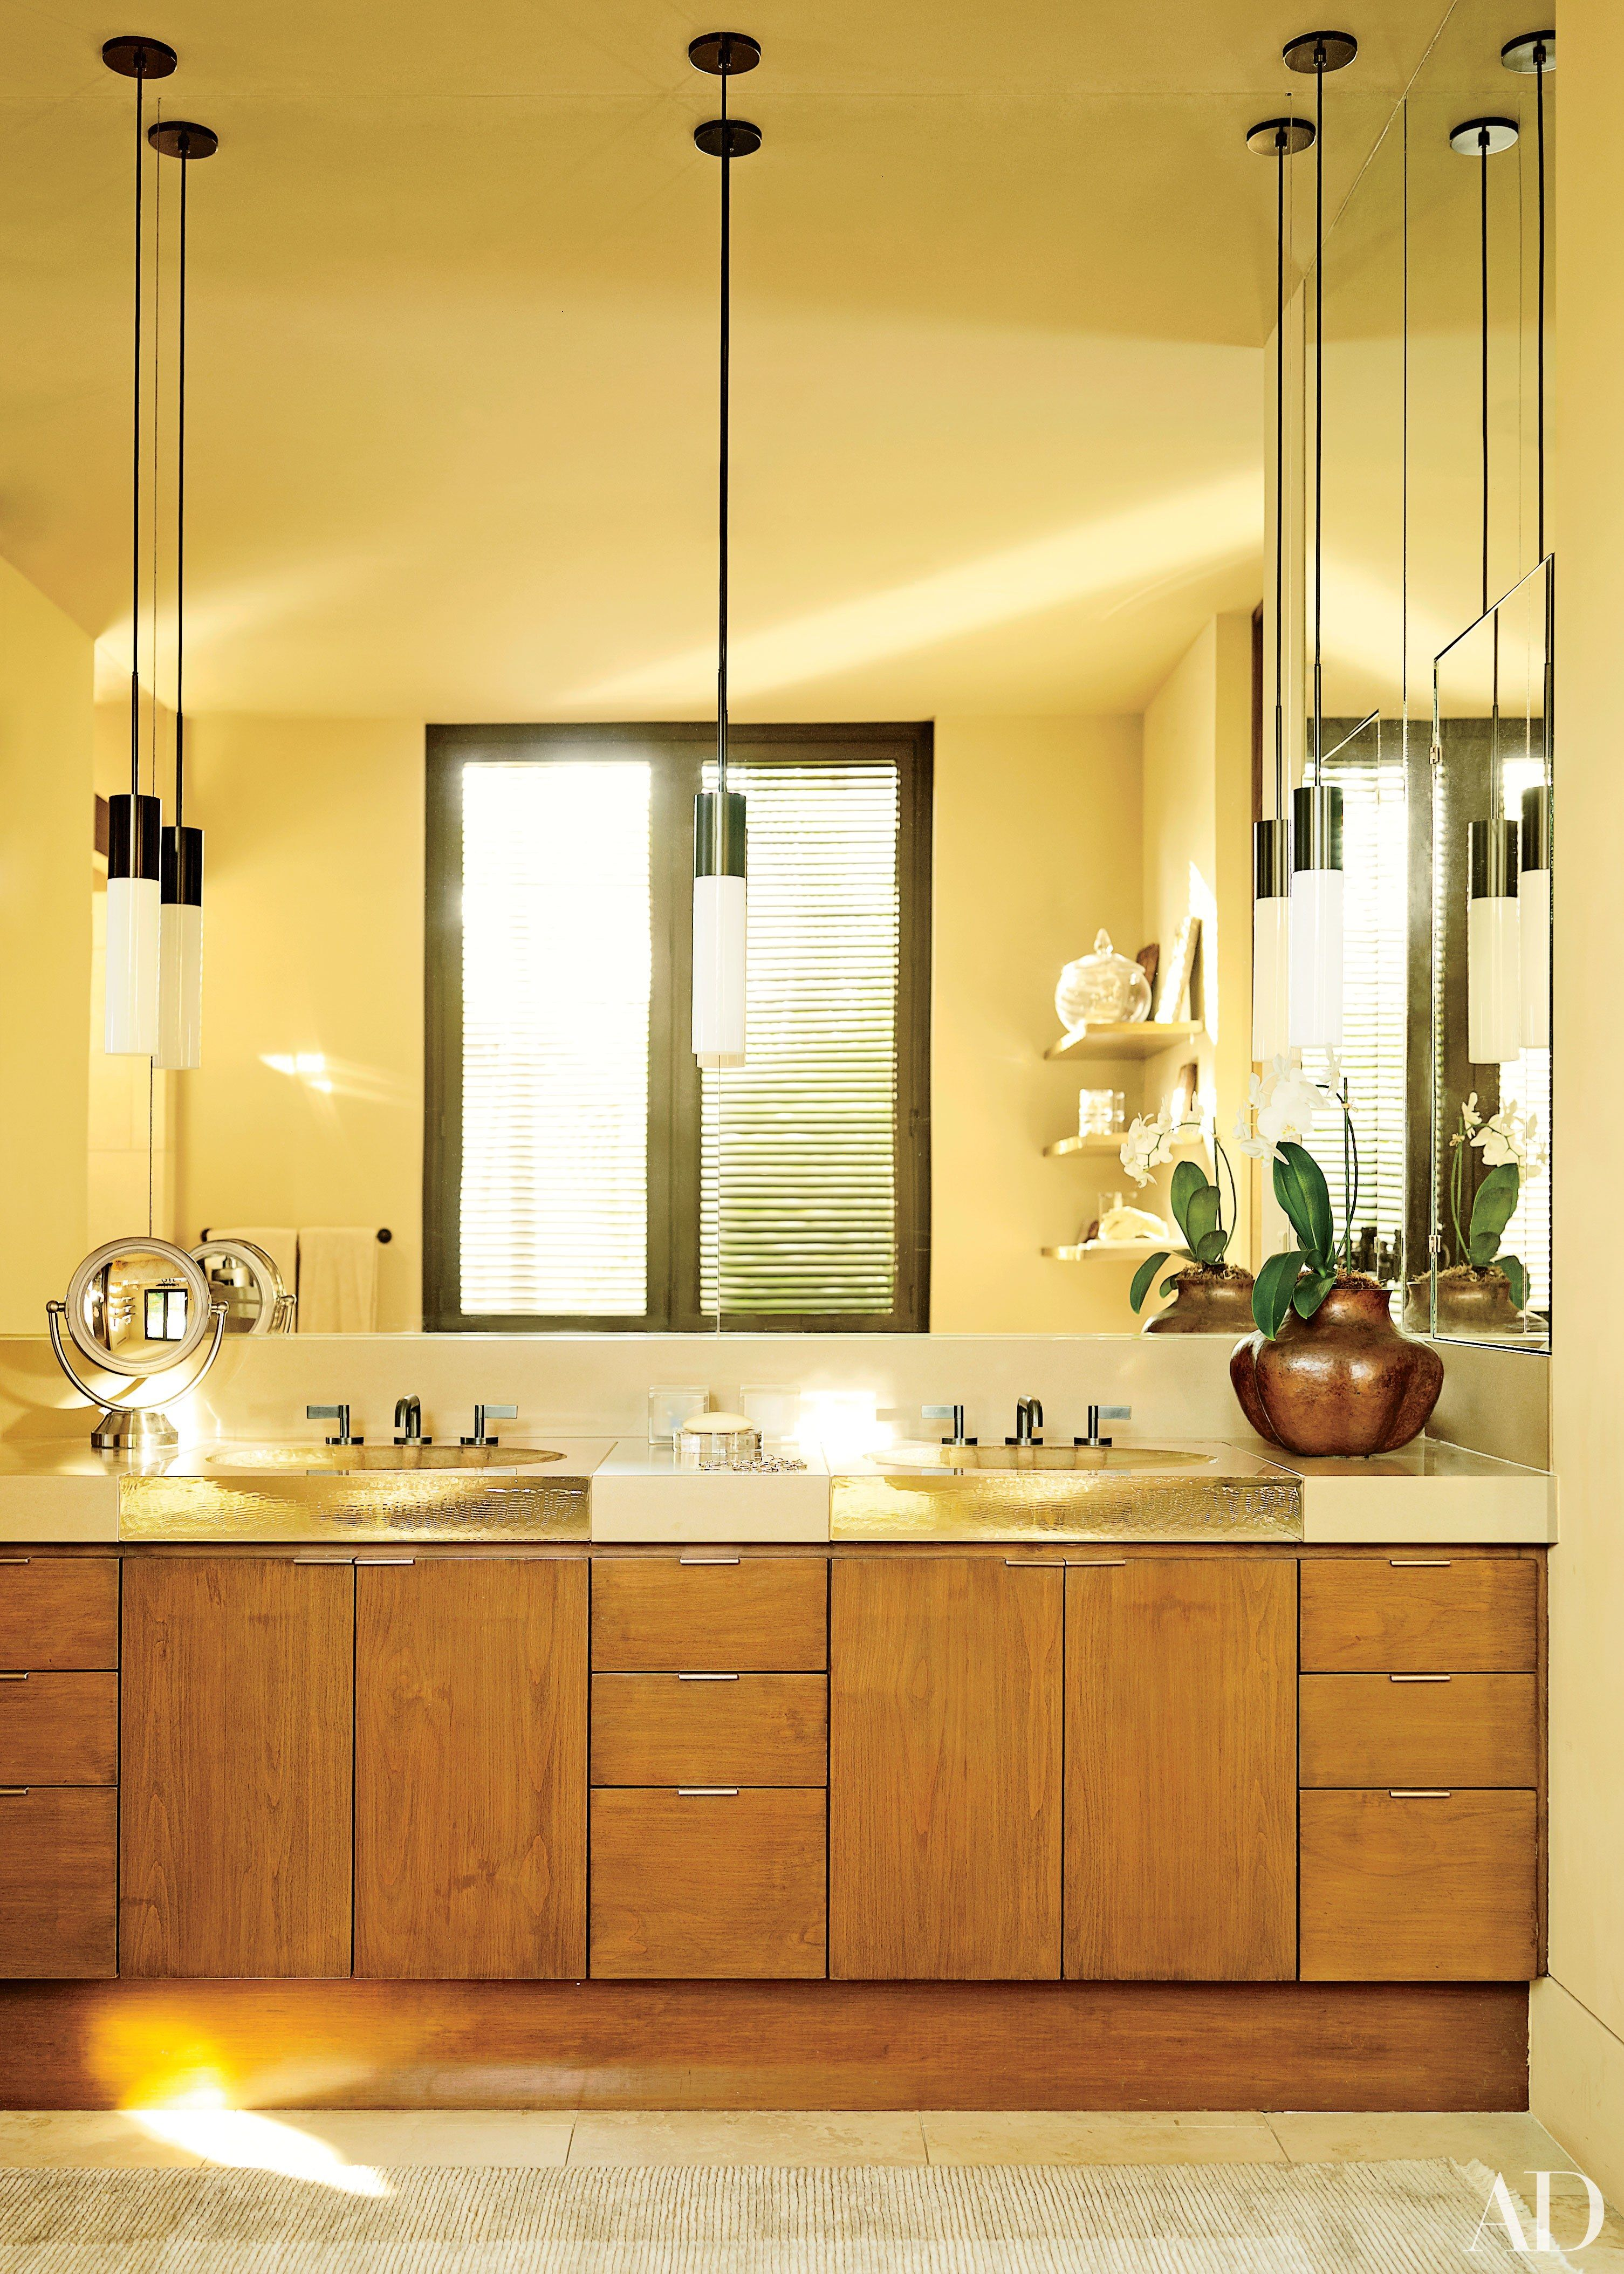 24 Great Ideas For His And Her Bathroom Sinks Vanity Design Bathroom Vanity Designs Bathroom Mirror Design